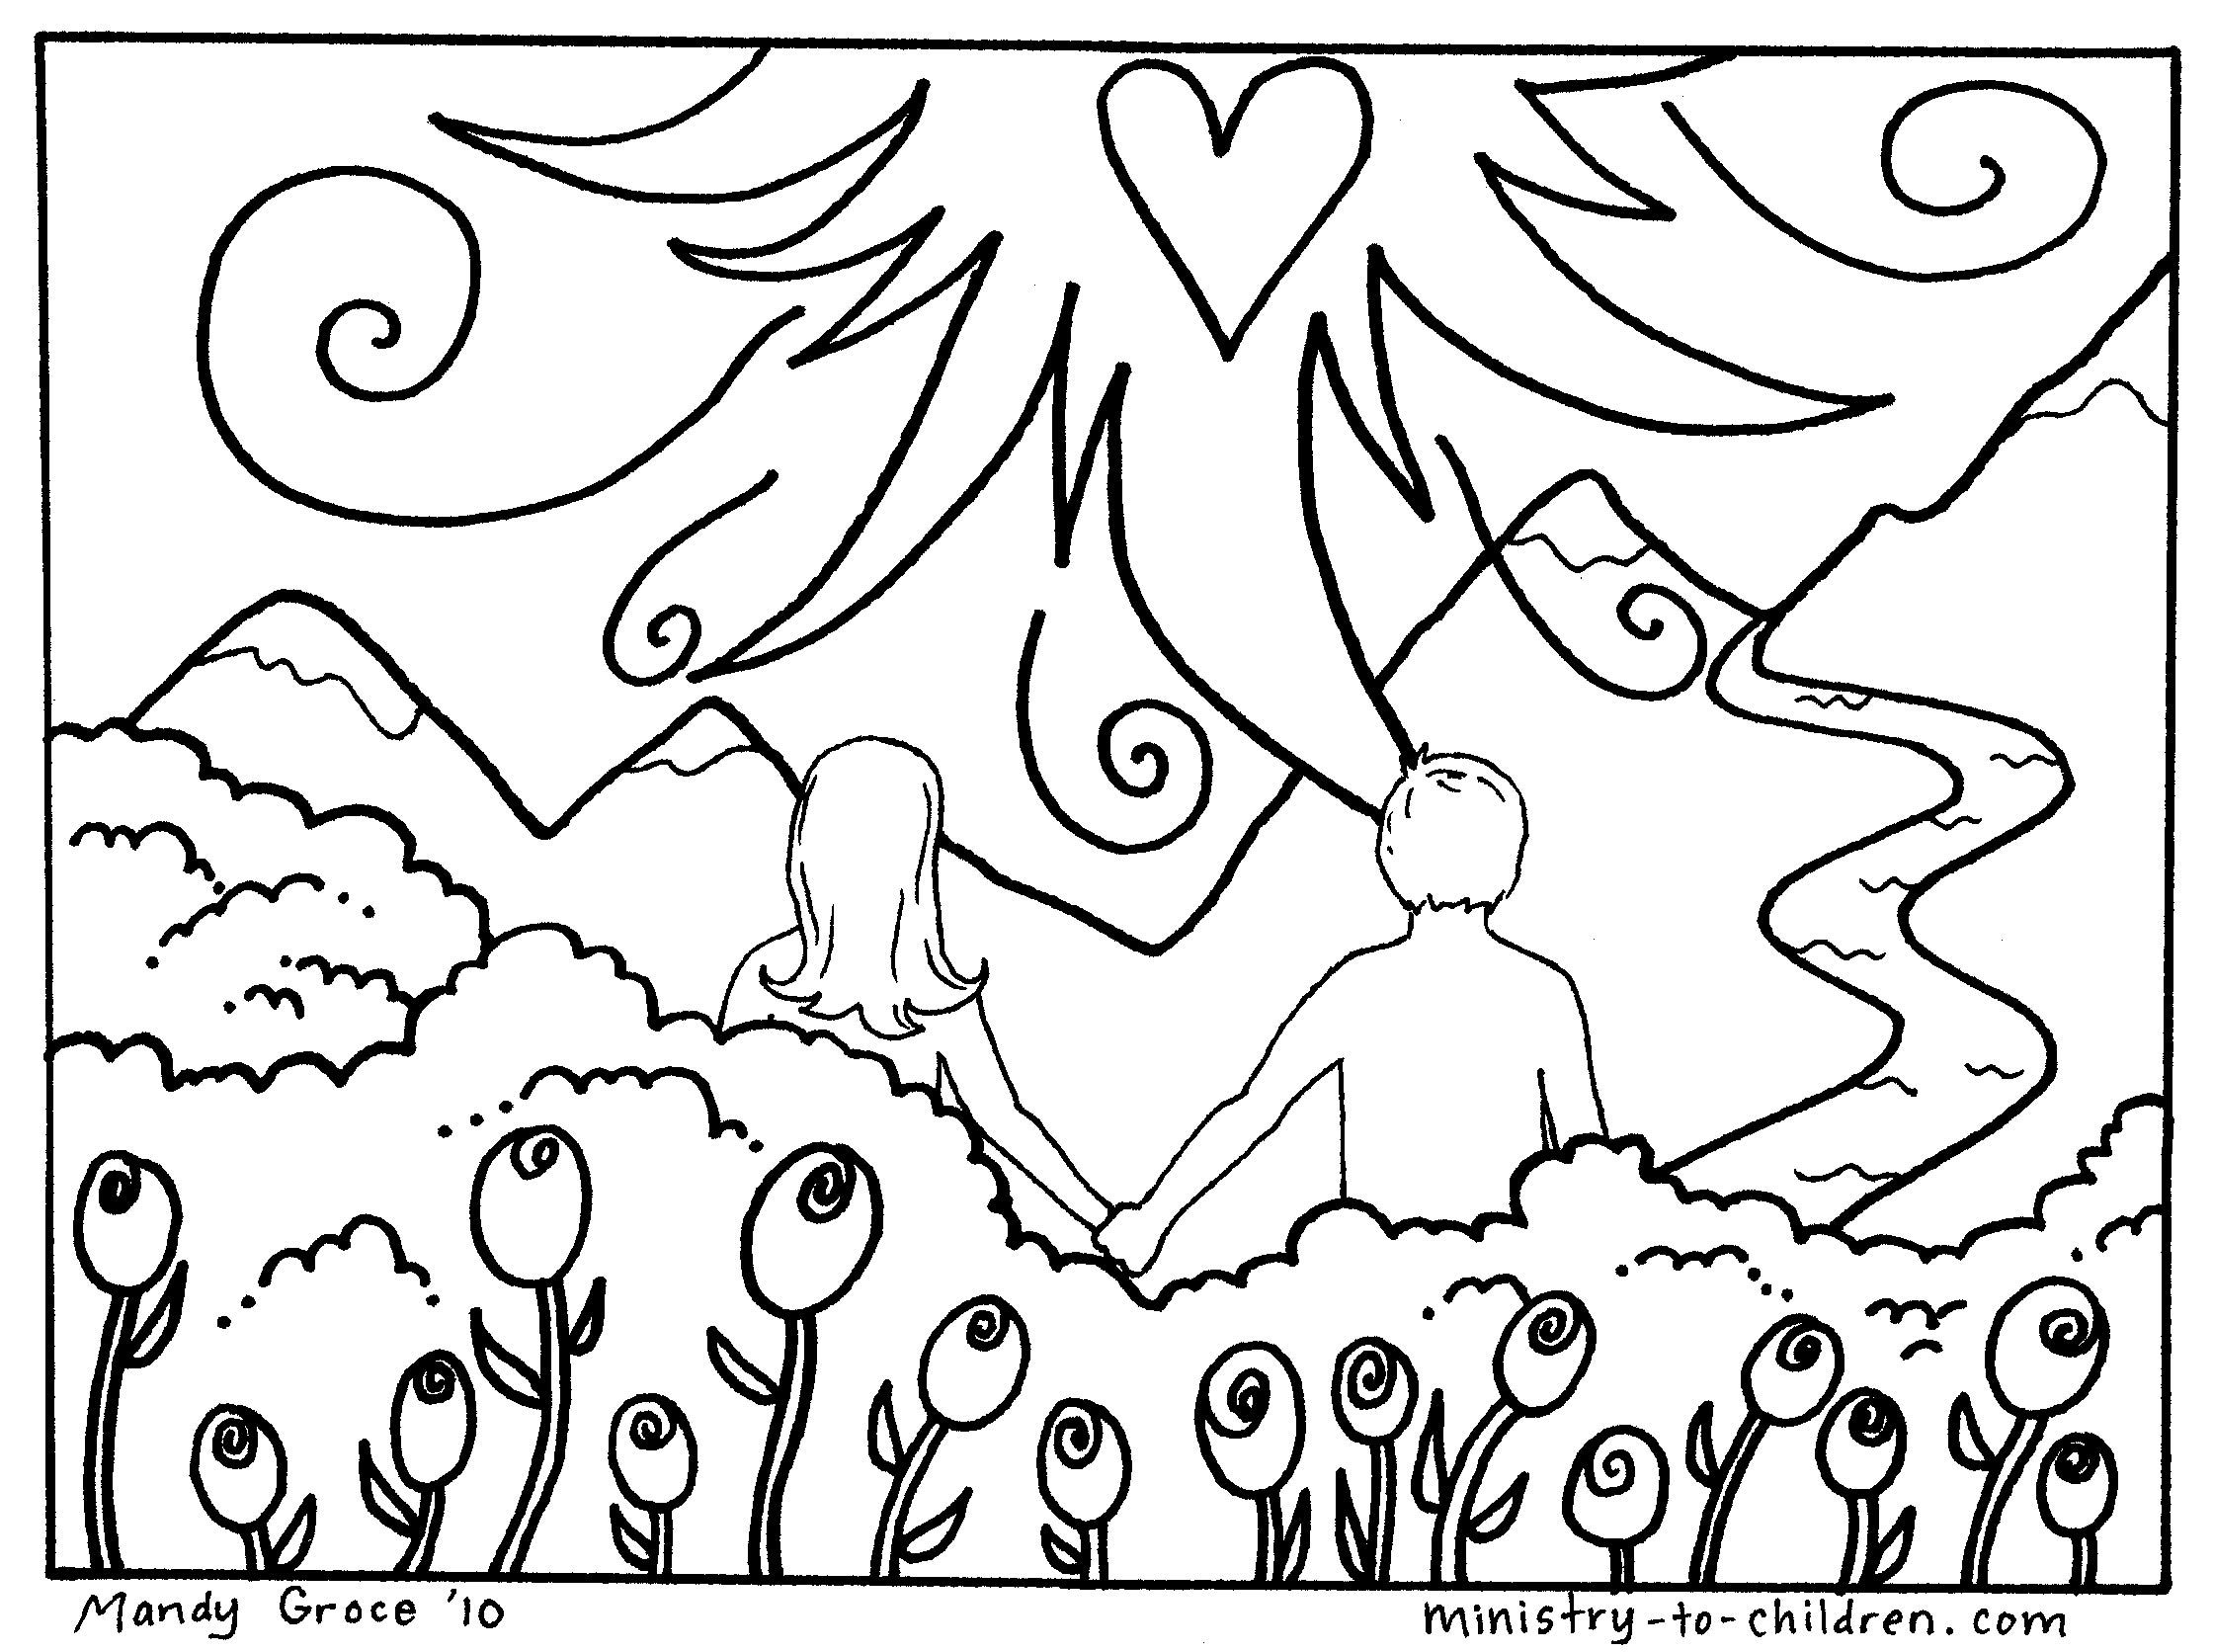 Creation Day 6 Coloring Page 2240x1672 Pixels